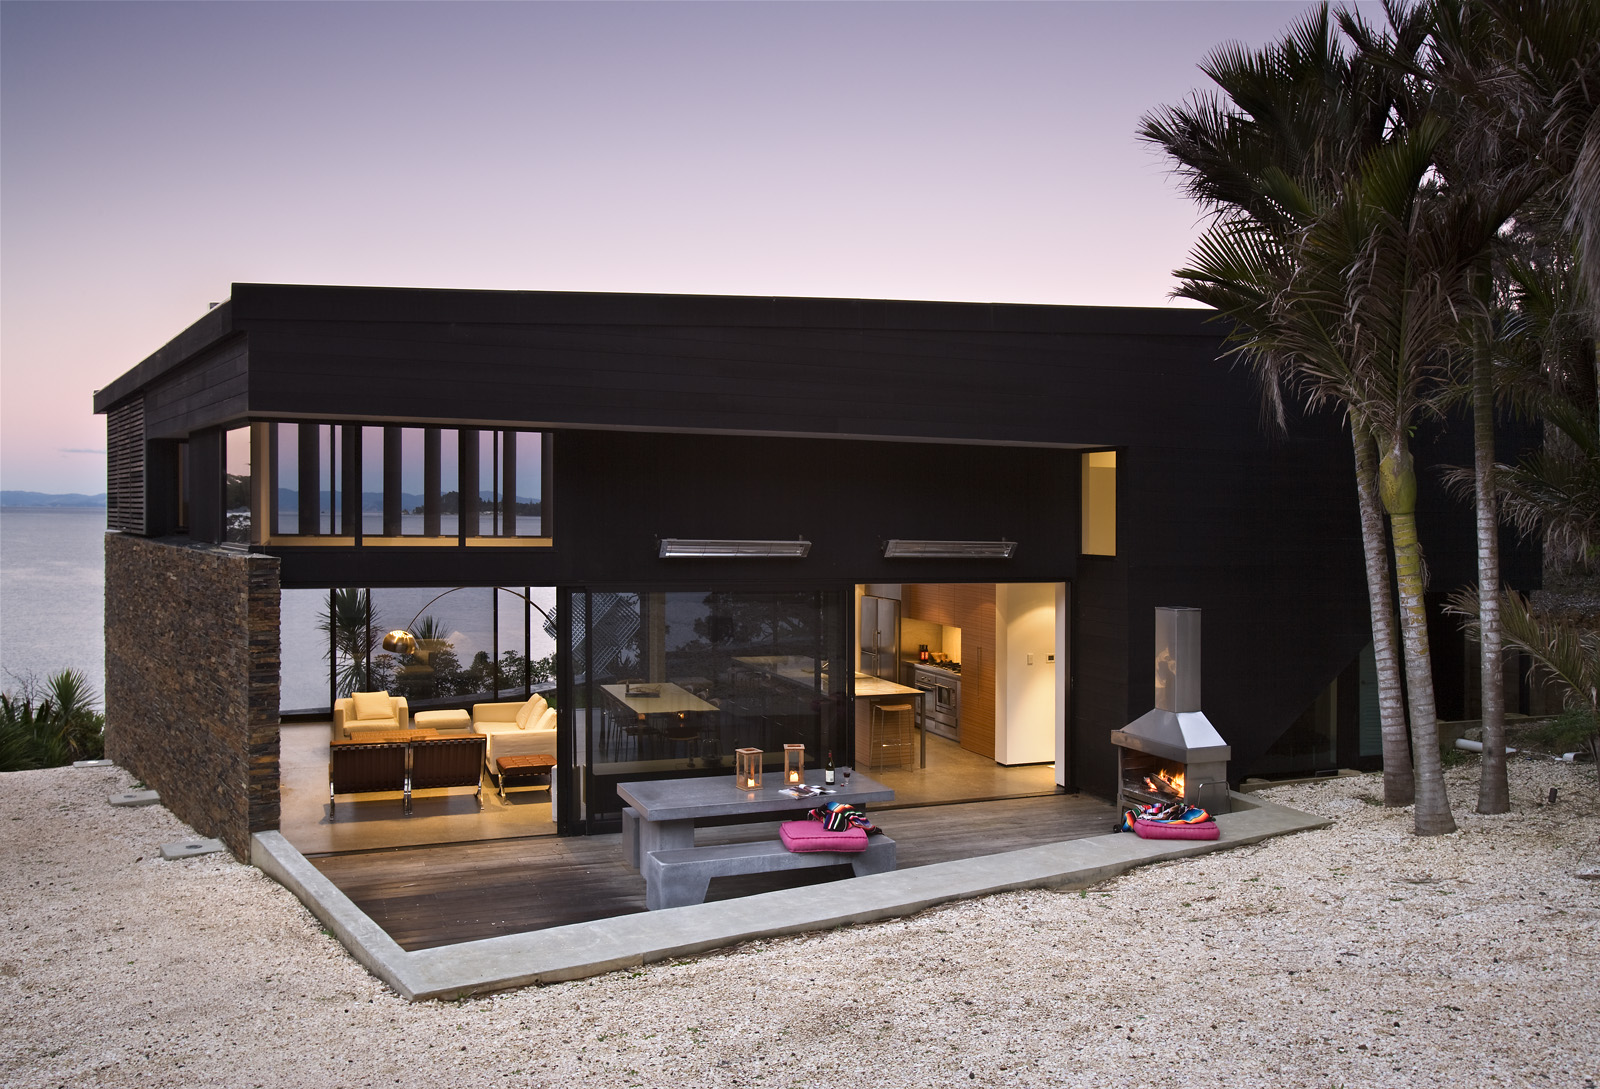 Contemporary beach house in new zealand by daniel marshall for Beach house designs new zealand